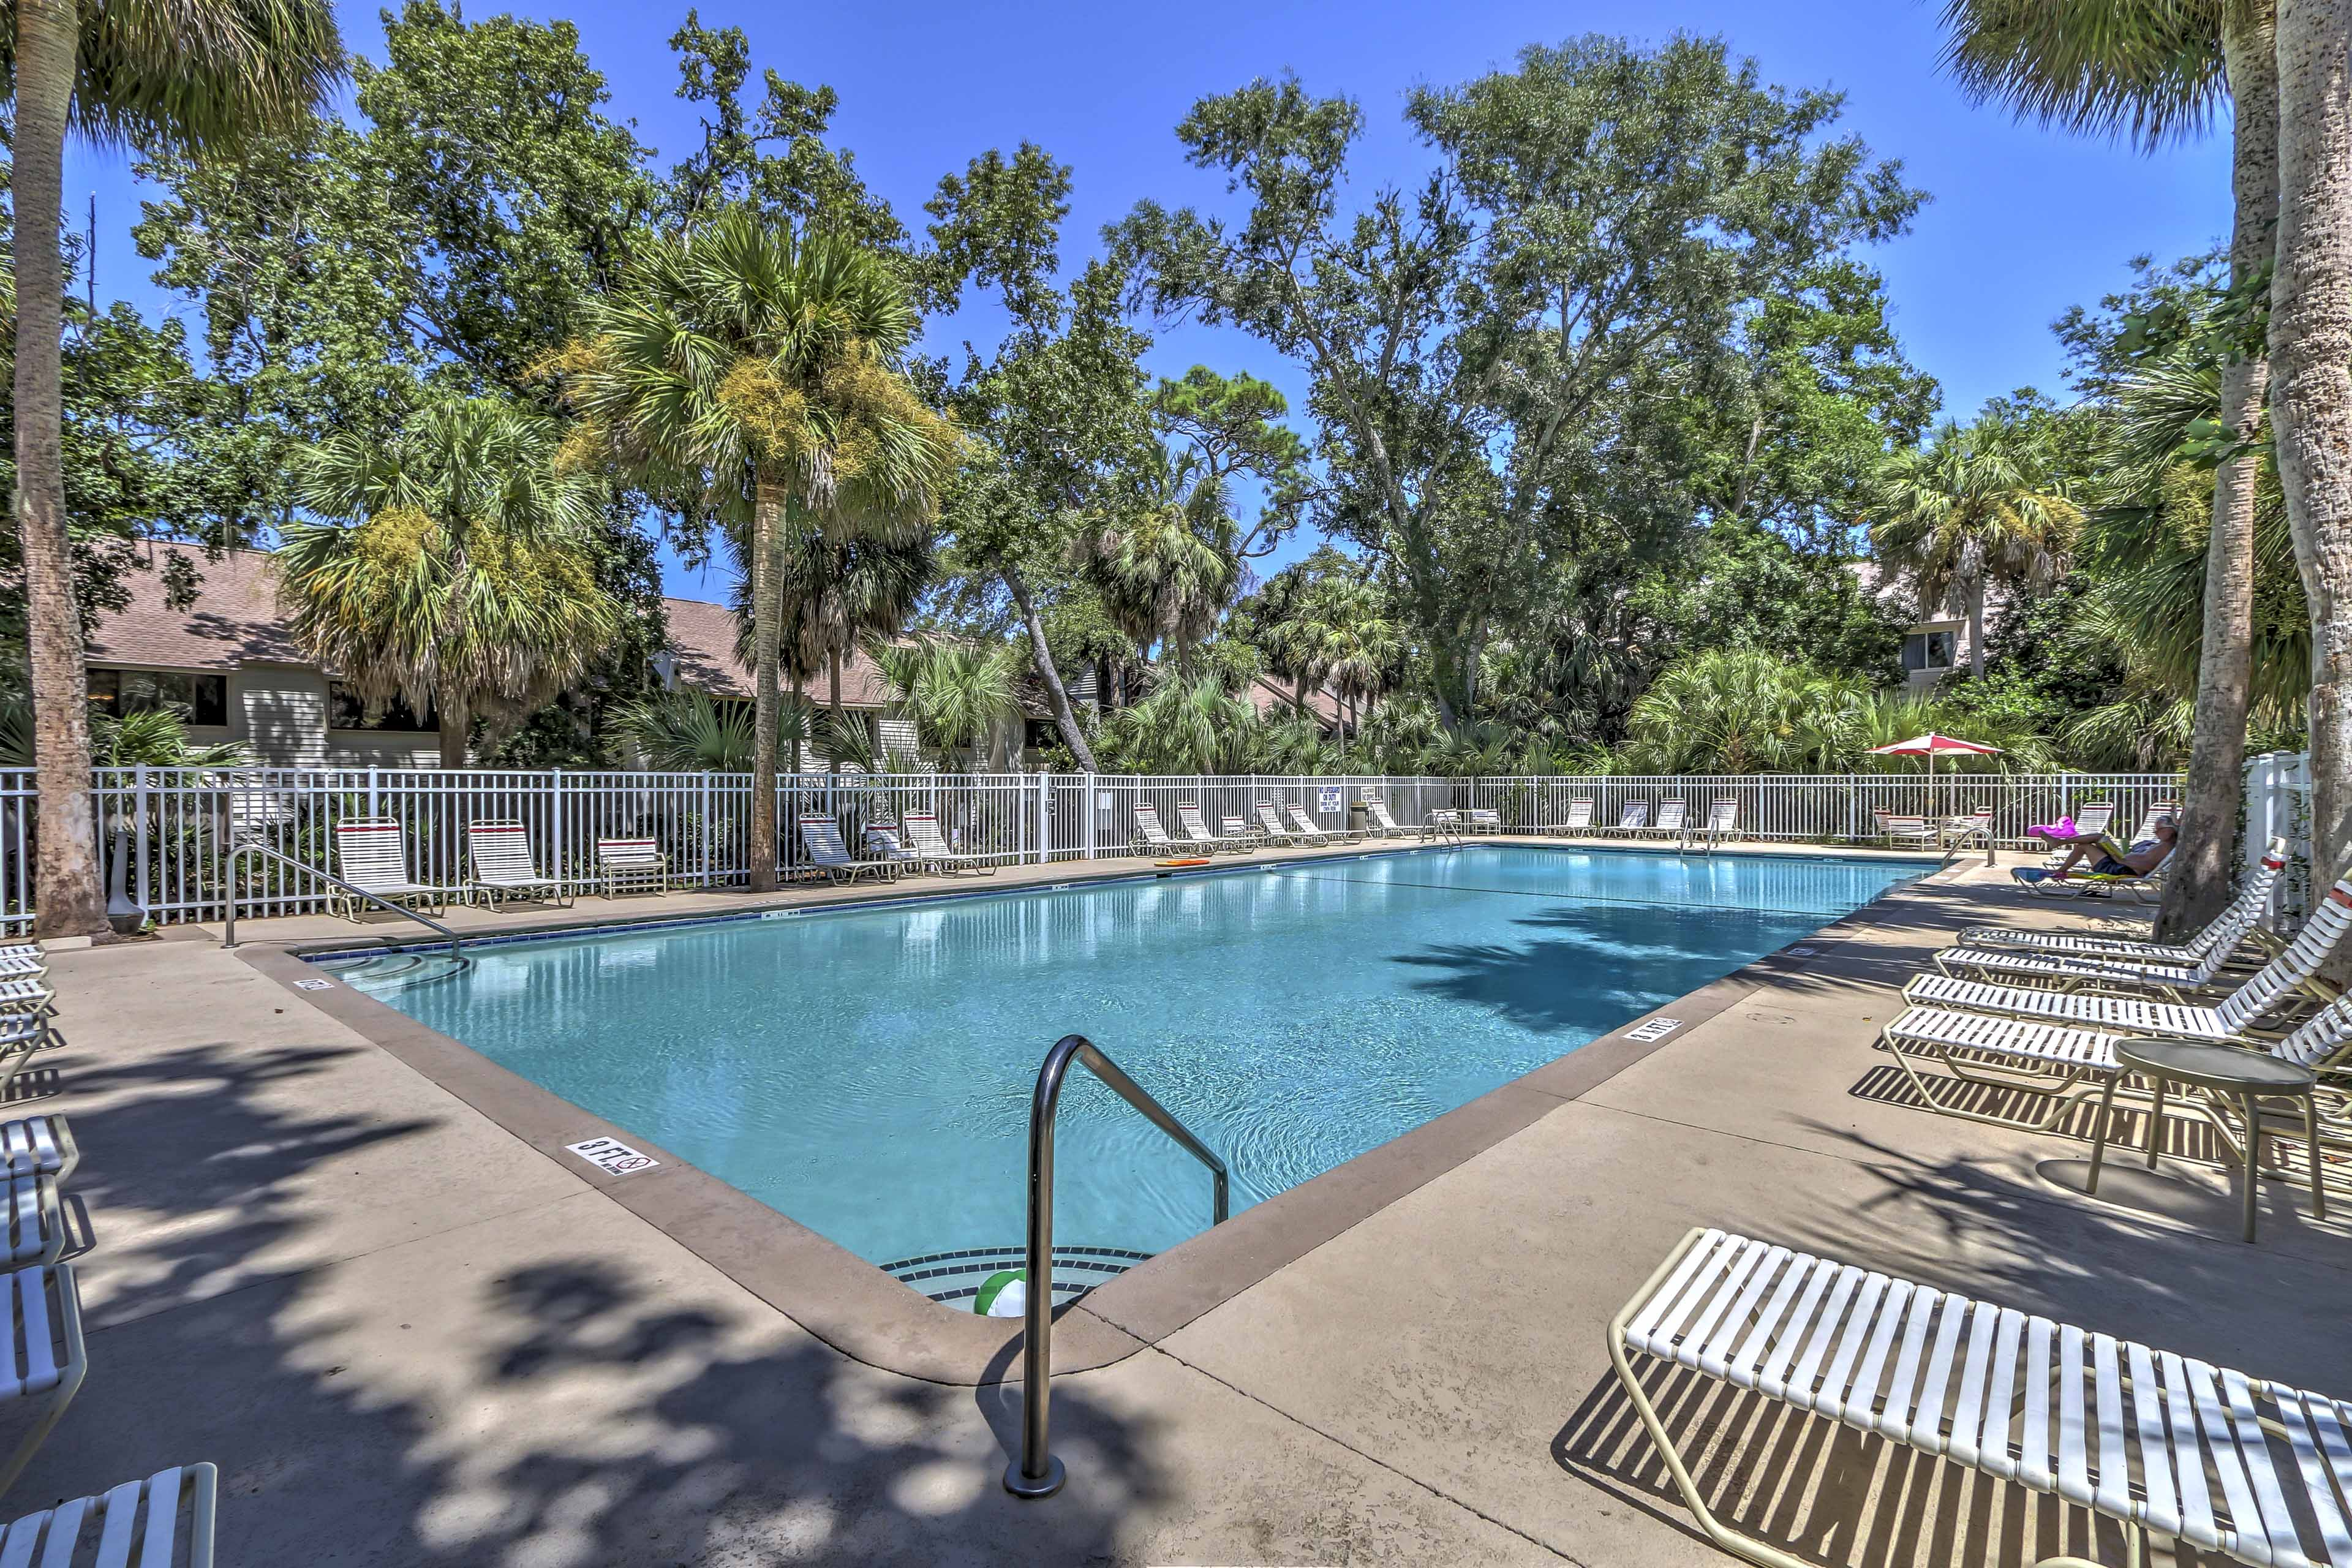 Enjoy endless fun in the sun at the community pool.